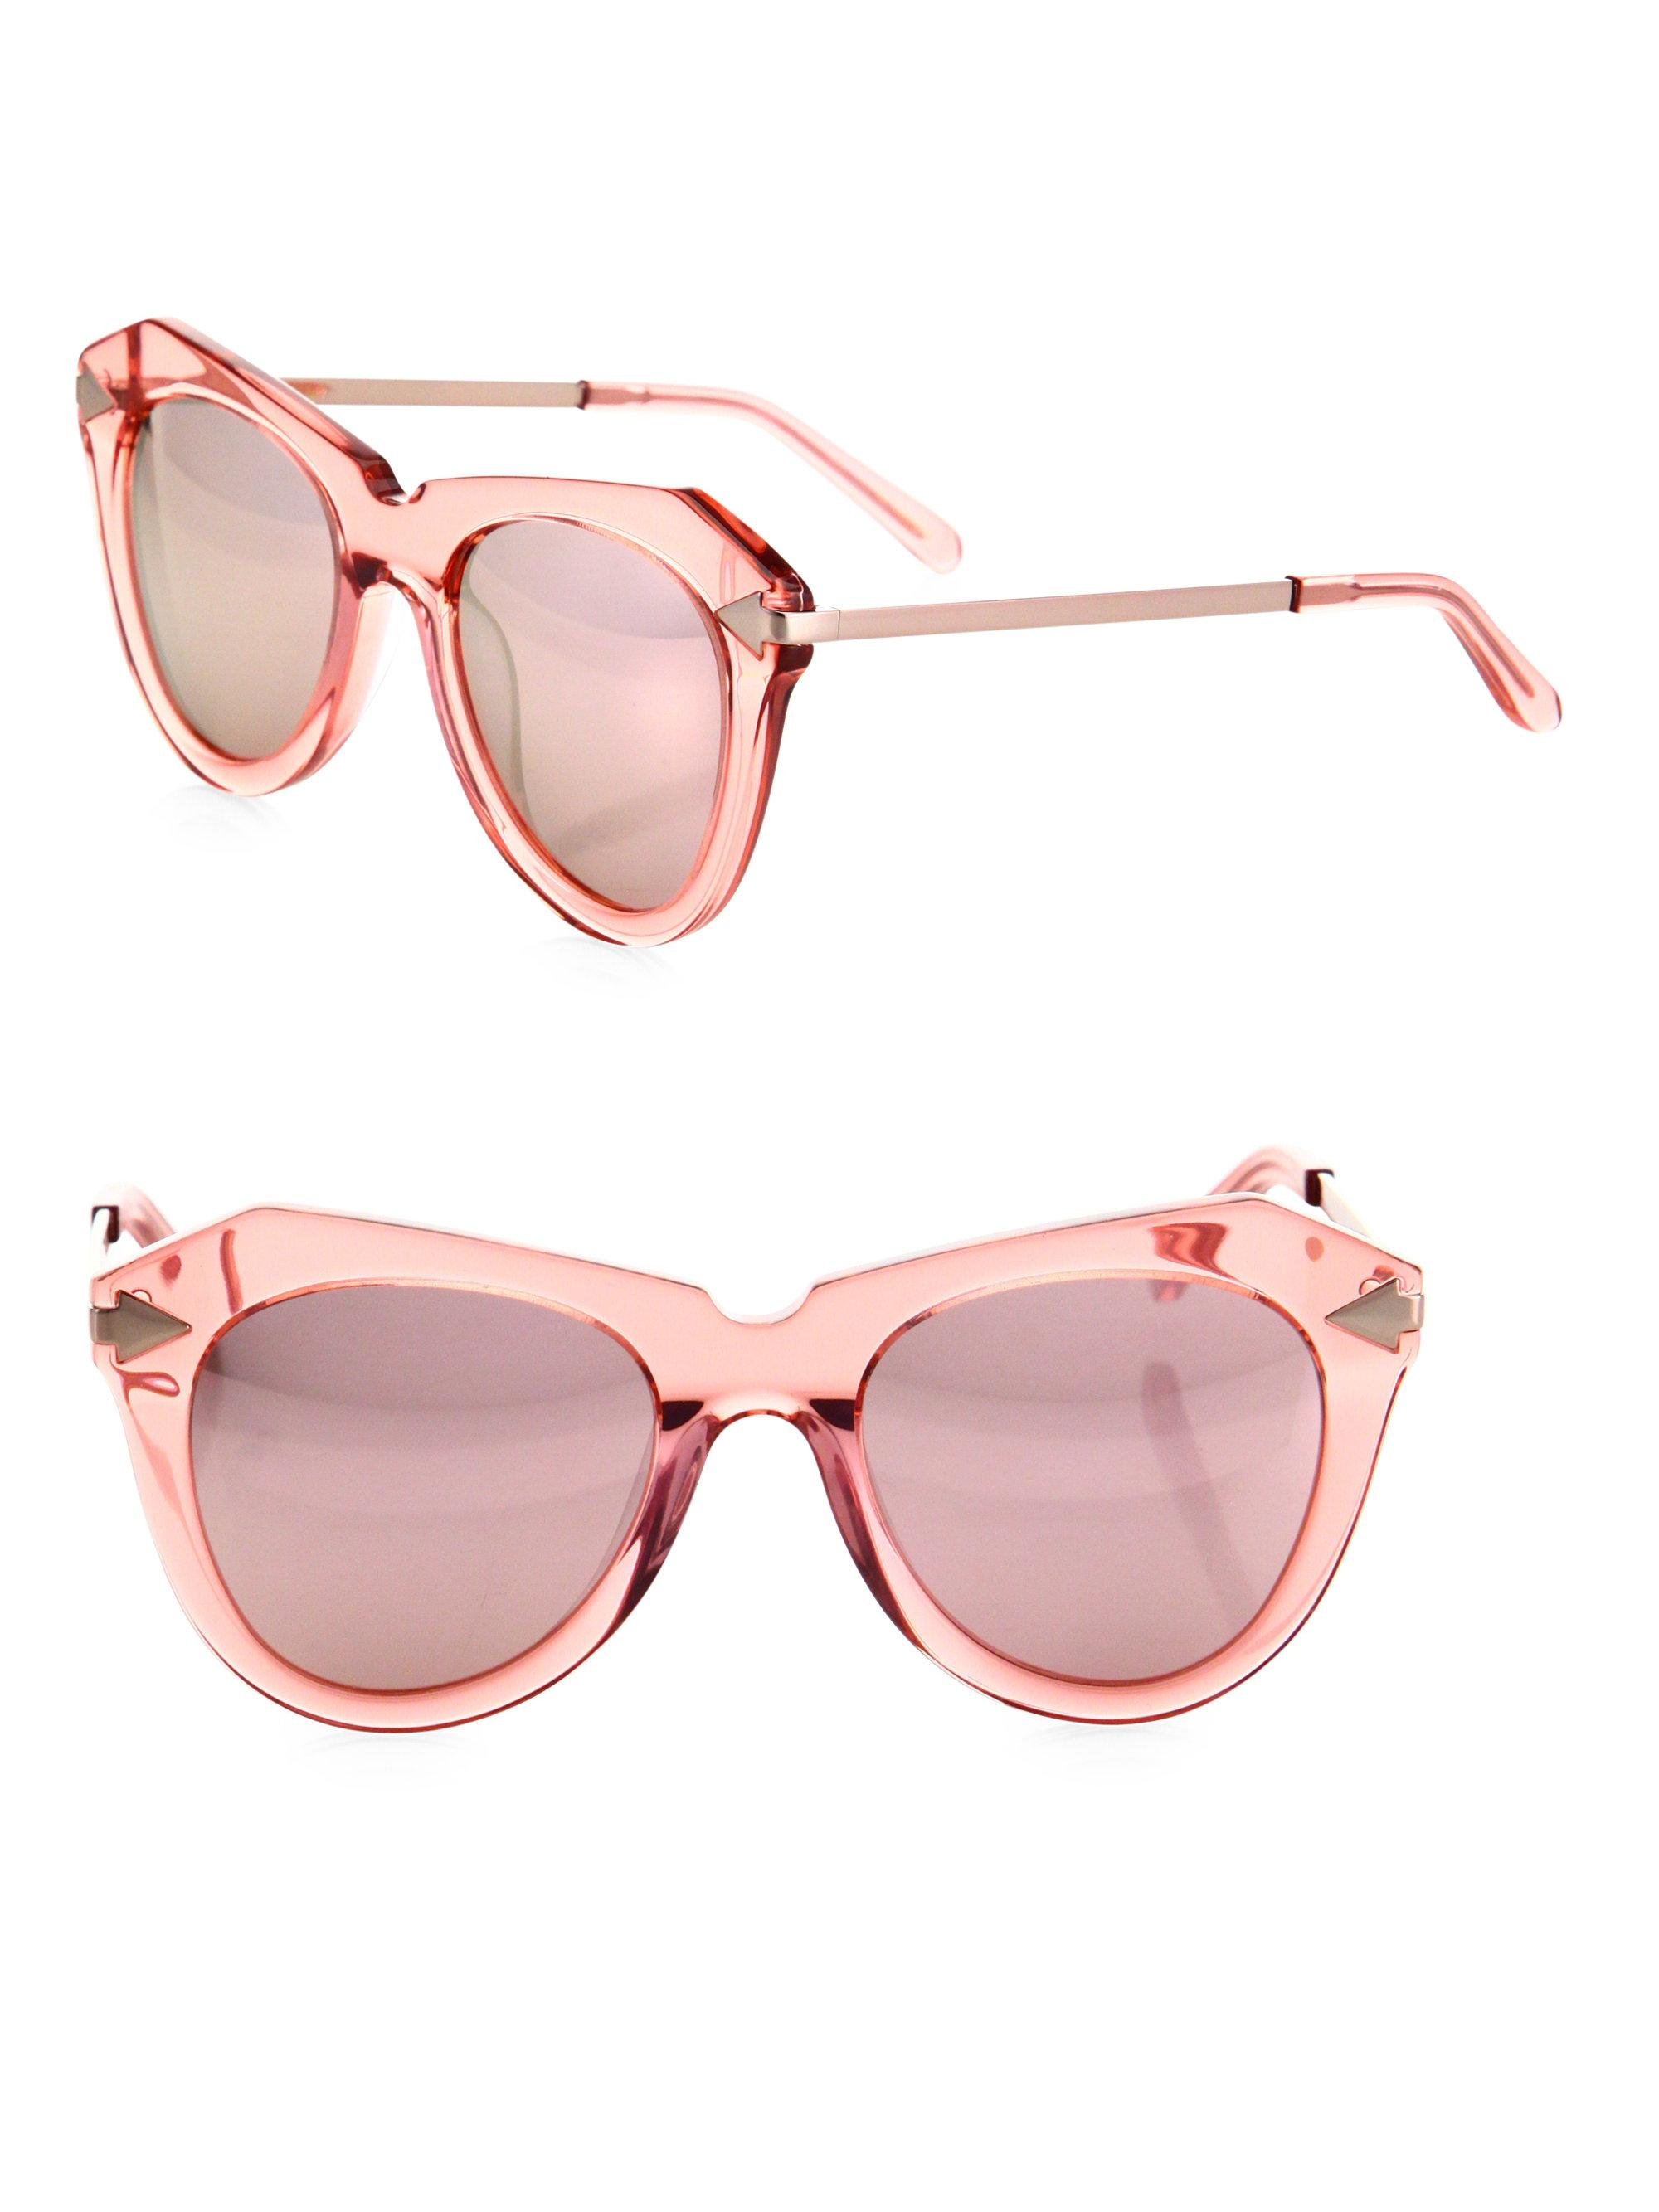 1bed4668e2fa Lyst - Karen Walker One Star 51mm Mirrored Cat Eye Sunglasses in Pink